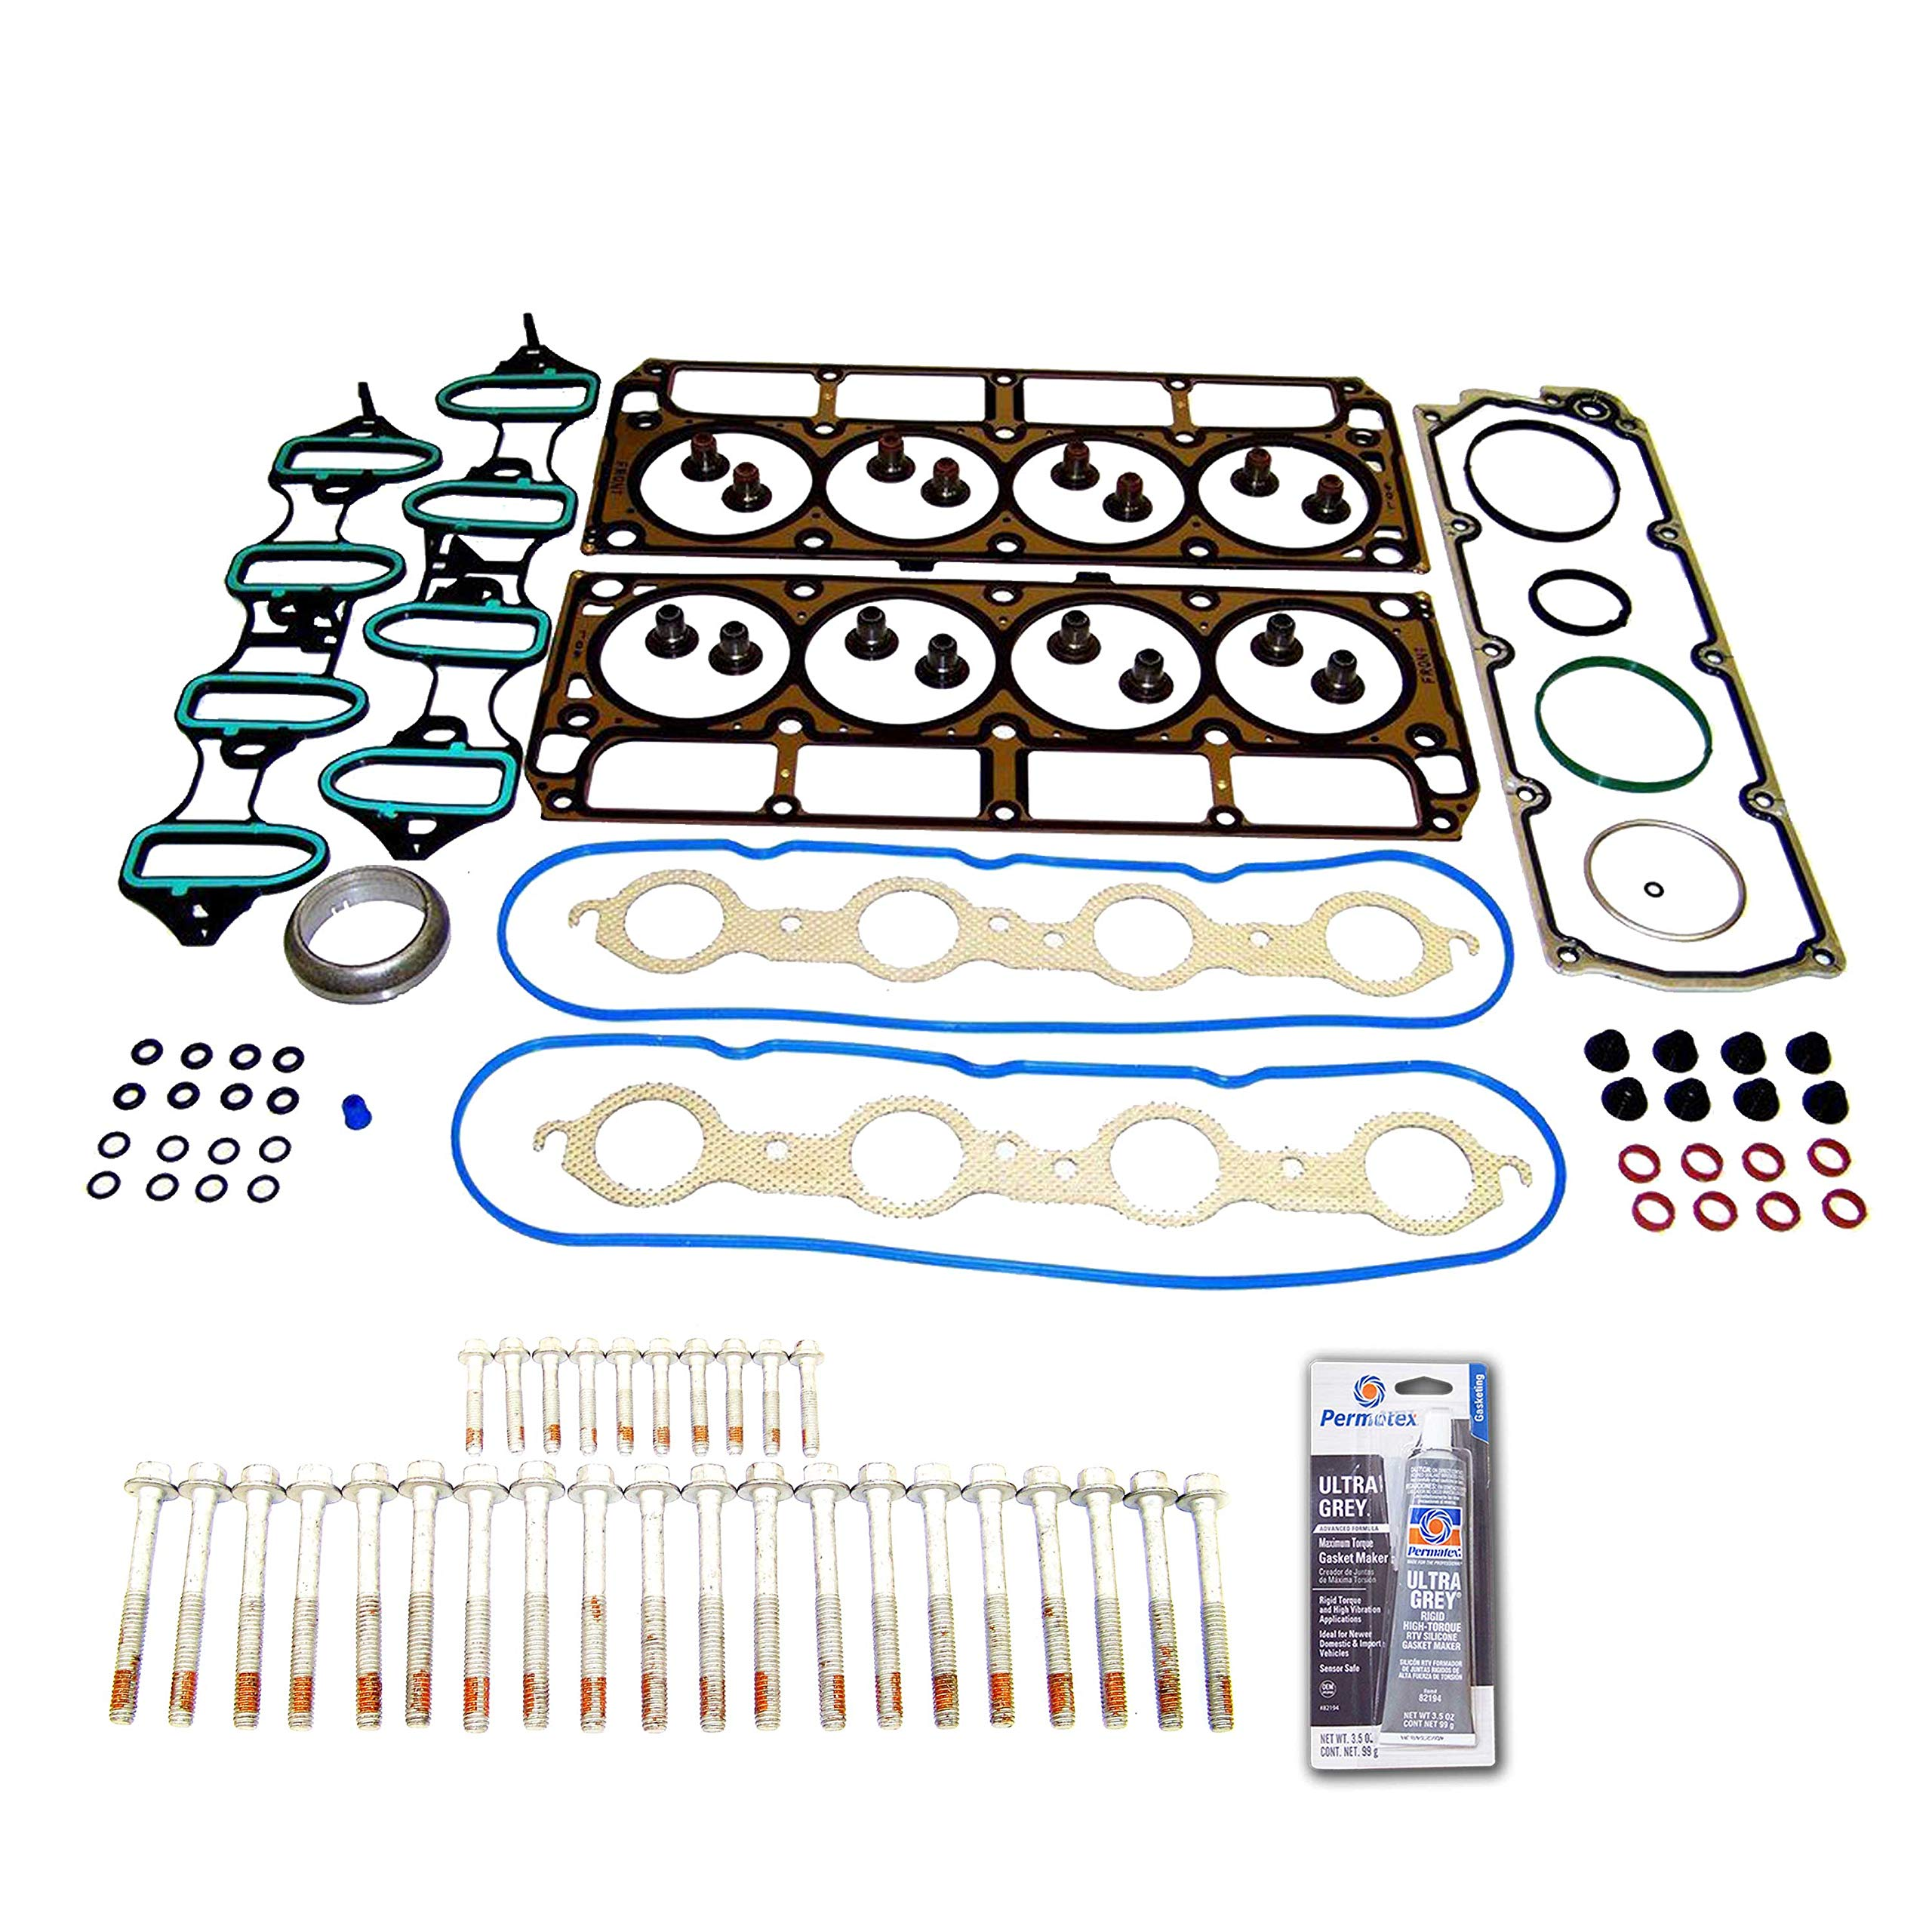 CHEAP Head Gasket Set Bolt Kit Fits: 05-11 Chevrolet Trailblazer 6 0L V8  OHV VORTEC - Reviews VIDEO - Special Discount Today